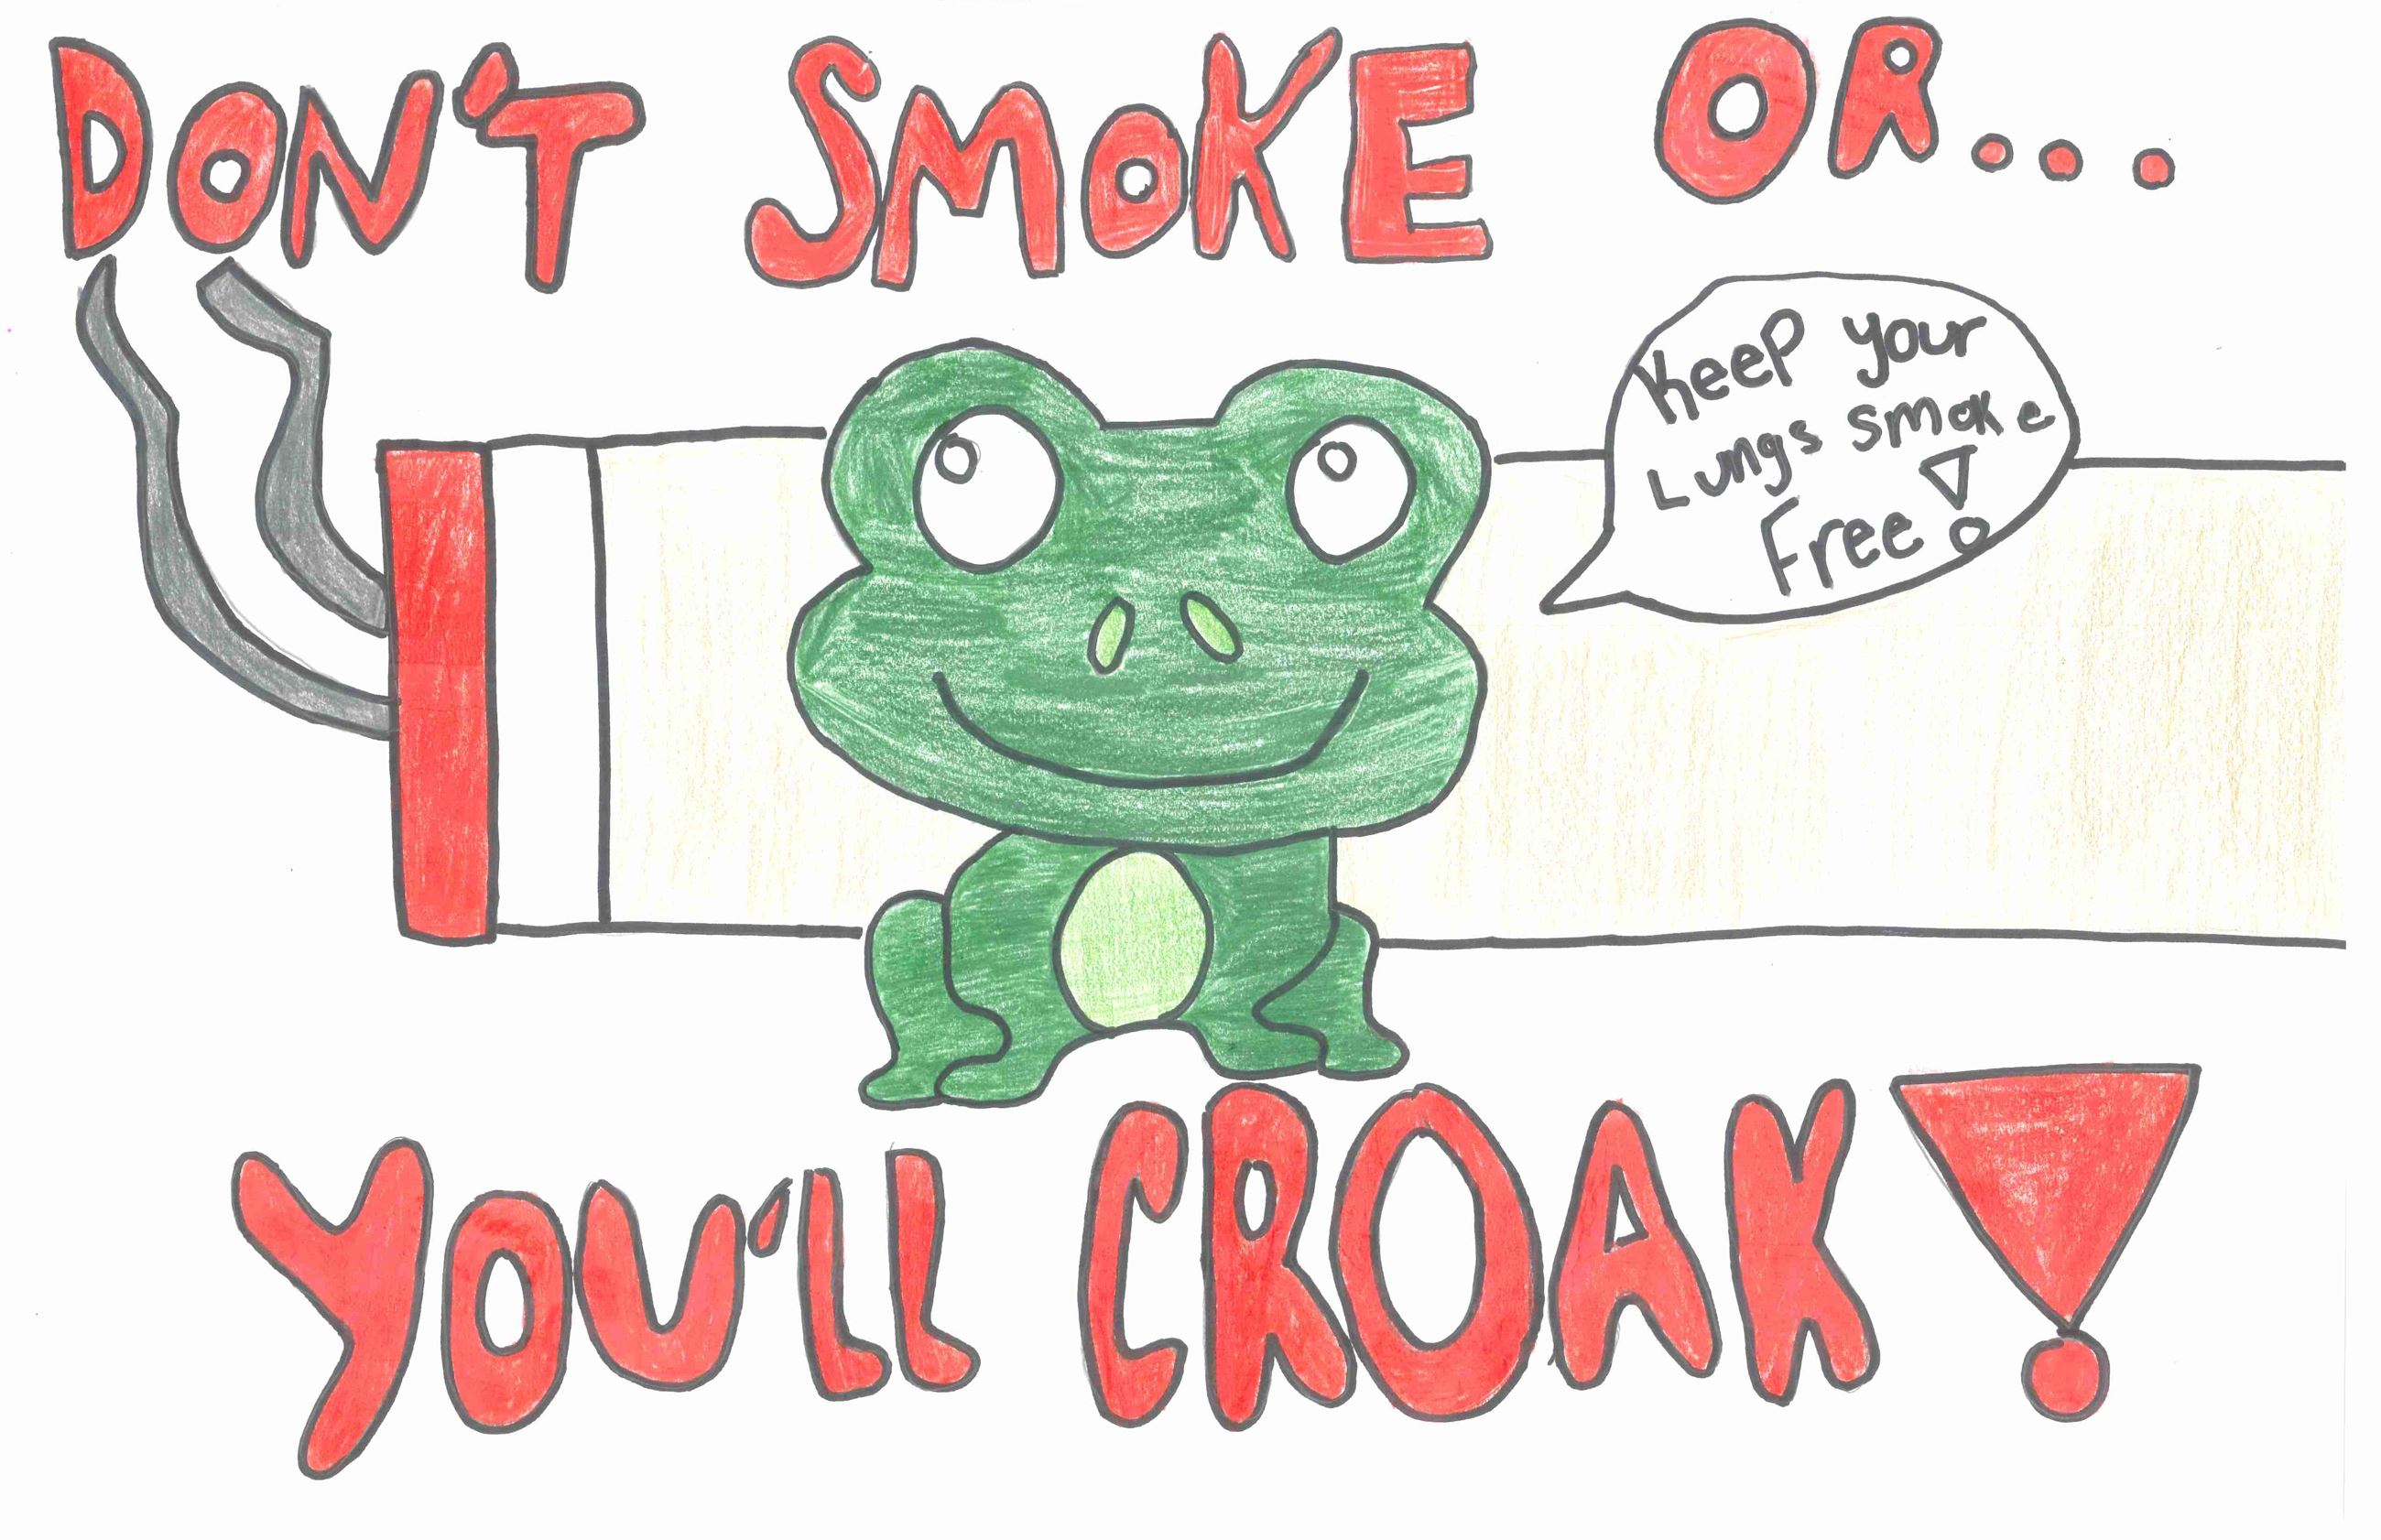 Hand drawn picture of a frog saying: Don't Smoke or You'll Croak